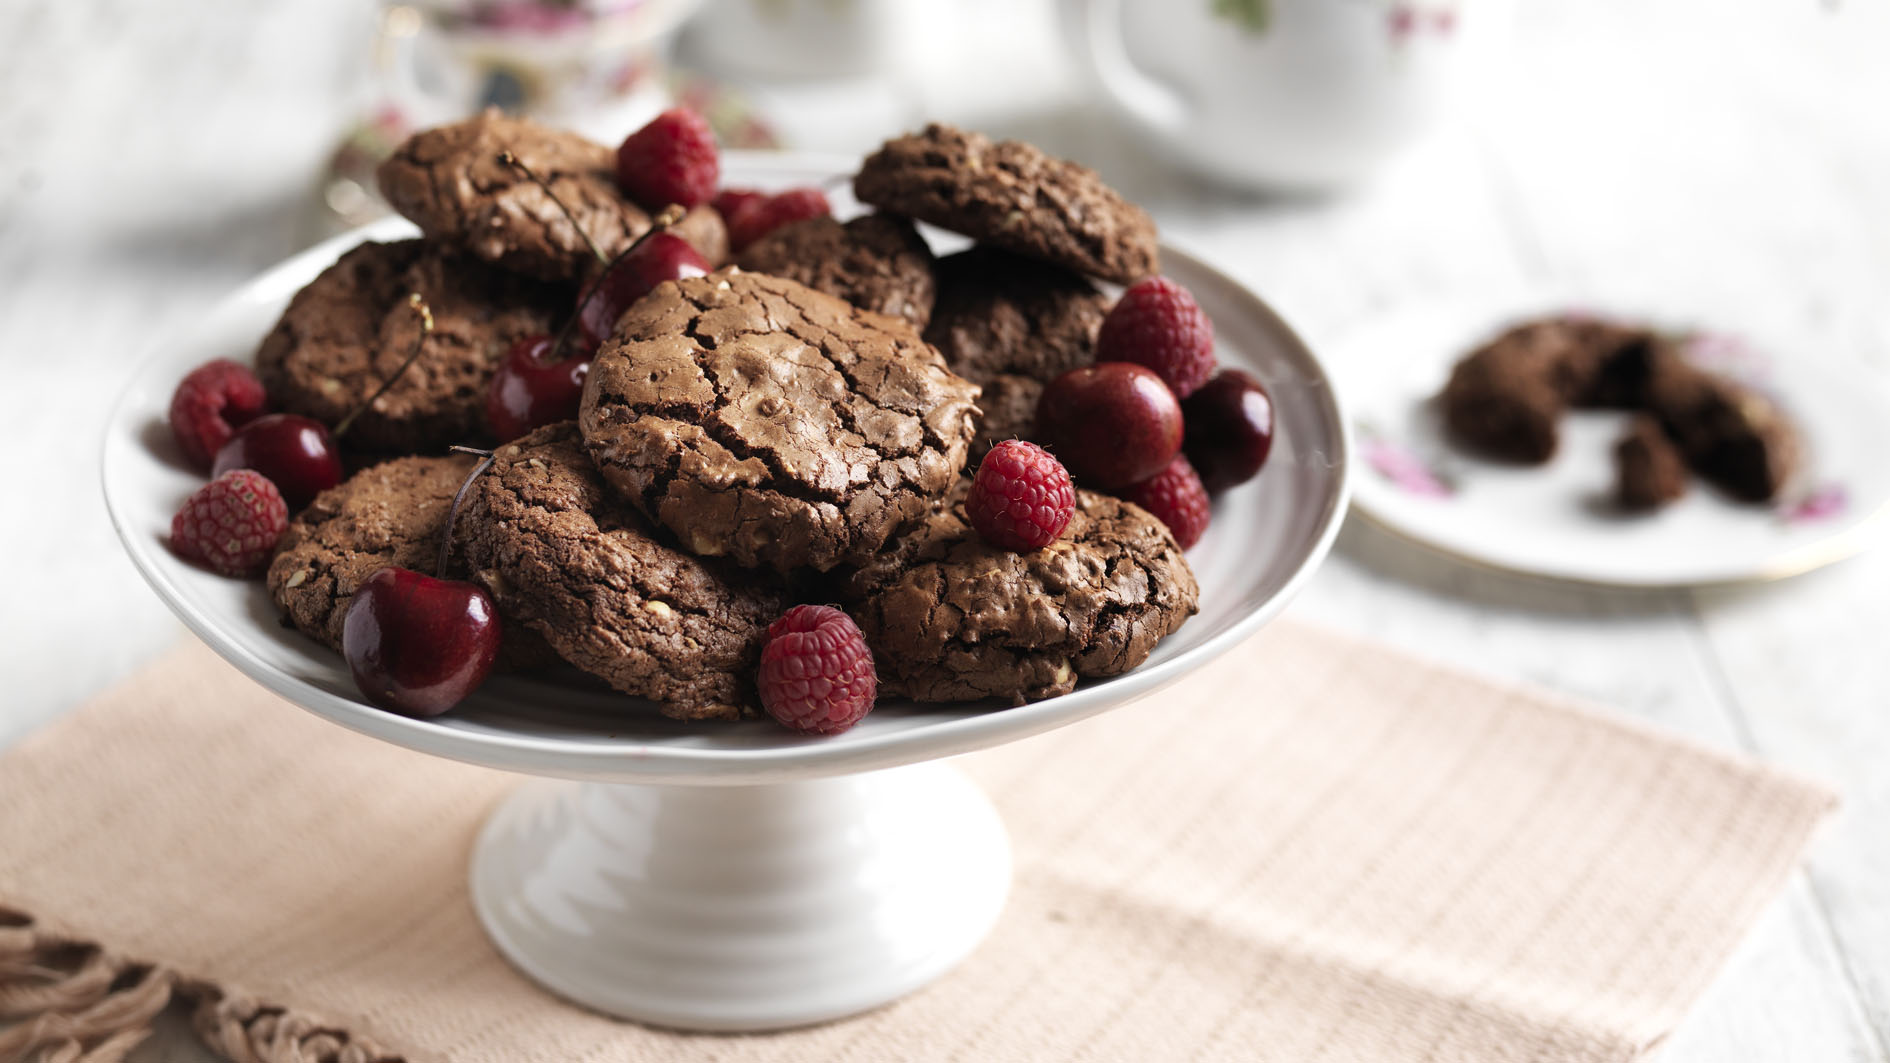 Chocolate cookies with scarlet fruit recipe bbc food forumfinder Images